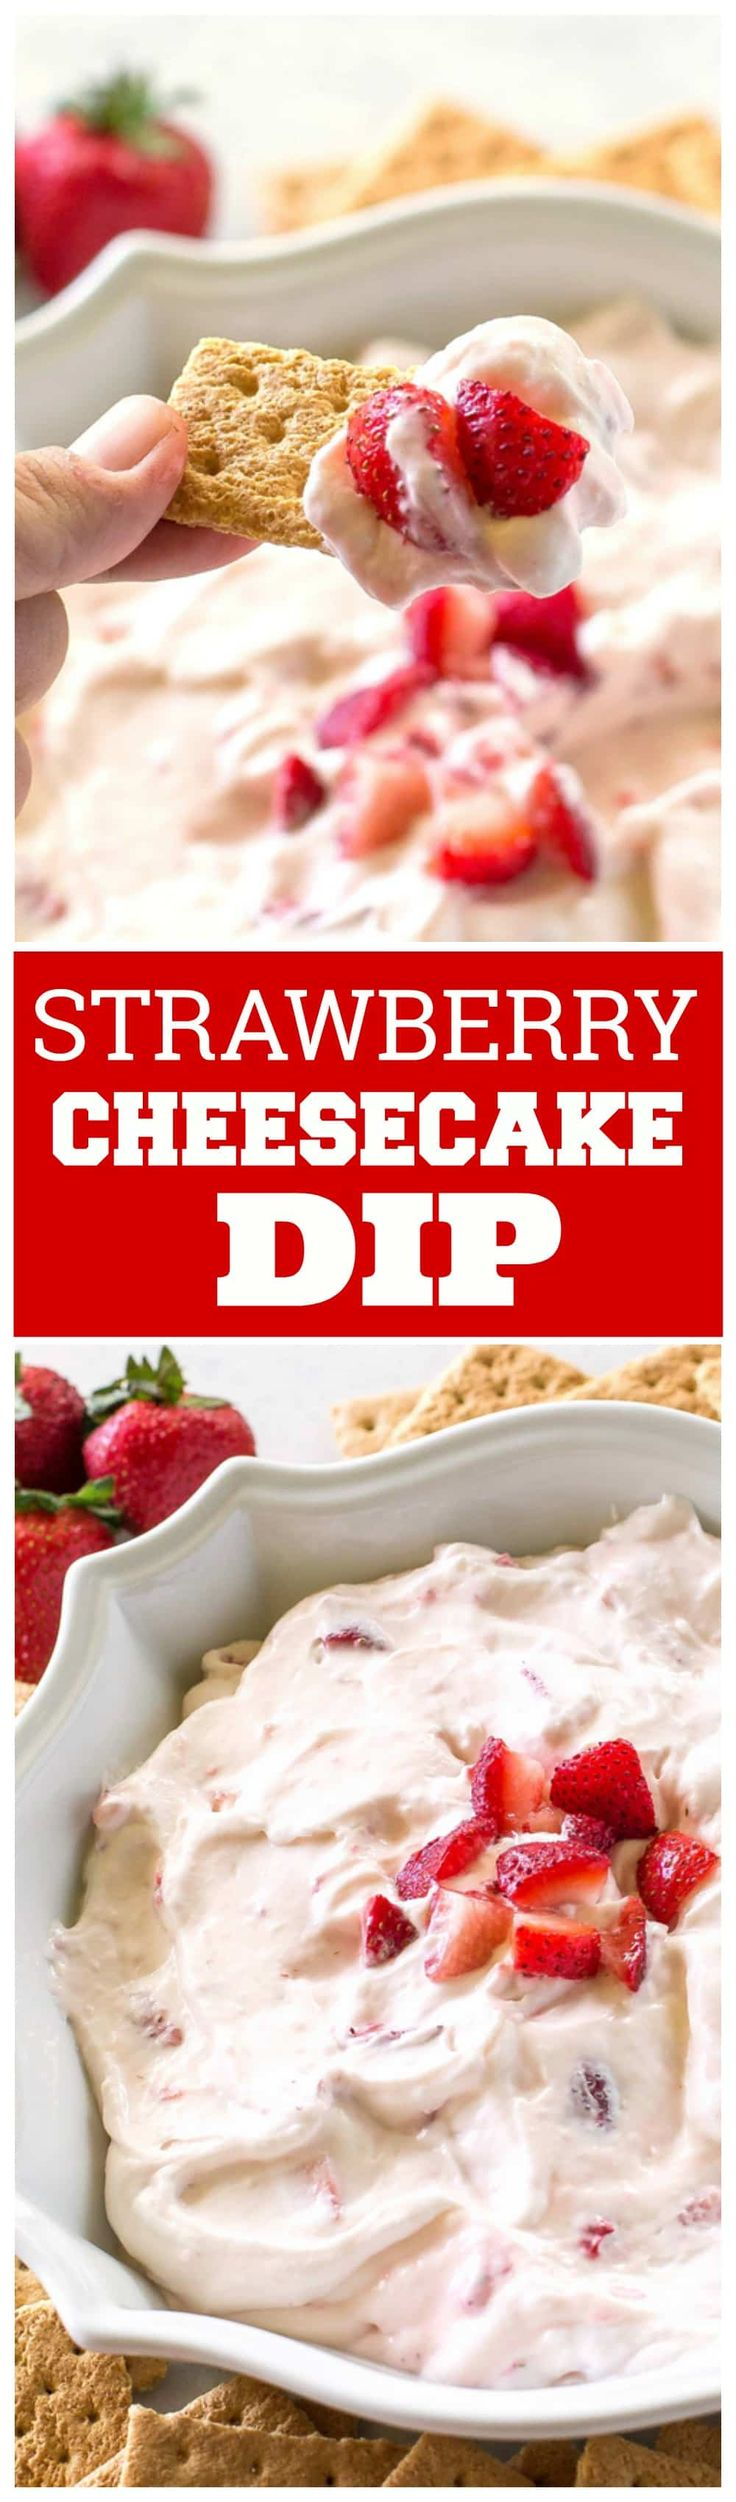 Strawberry Cheesecake Dip made with fresh strawberries and fresh whipped cream! the-girl-who-ate-everything.com